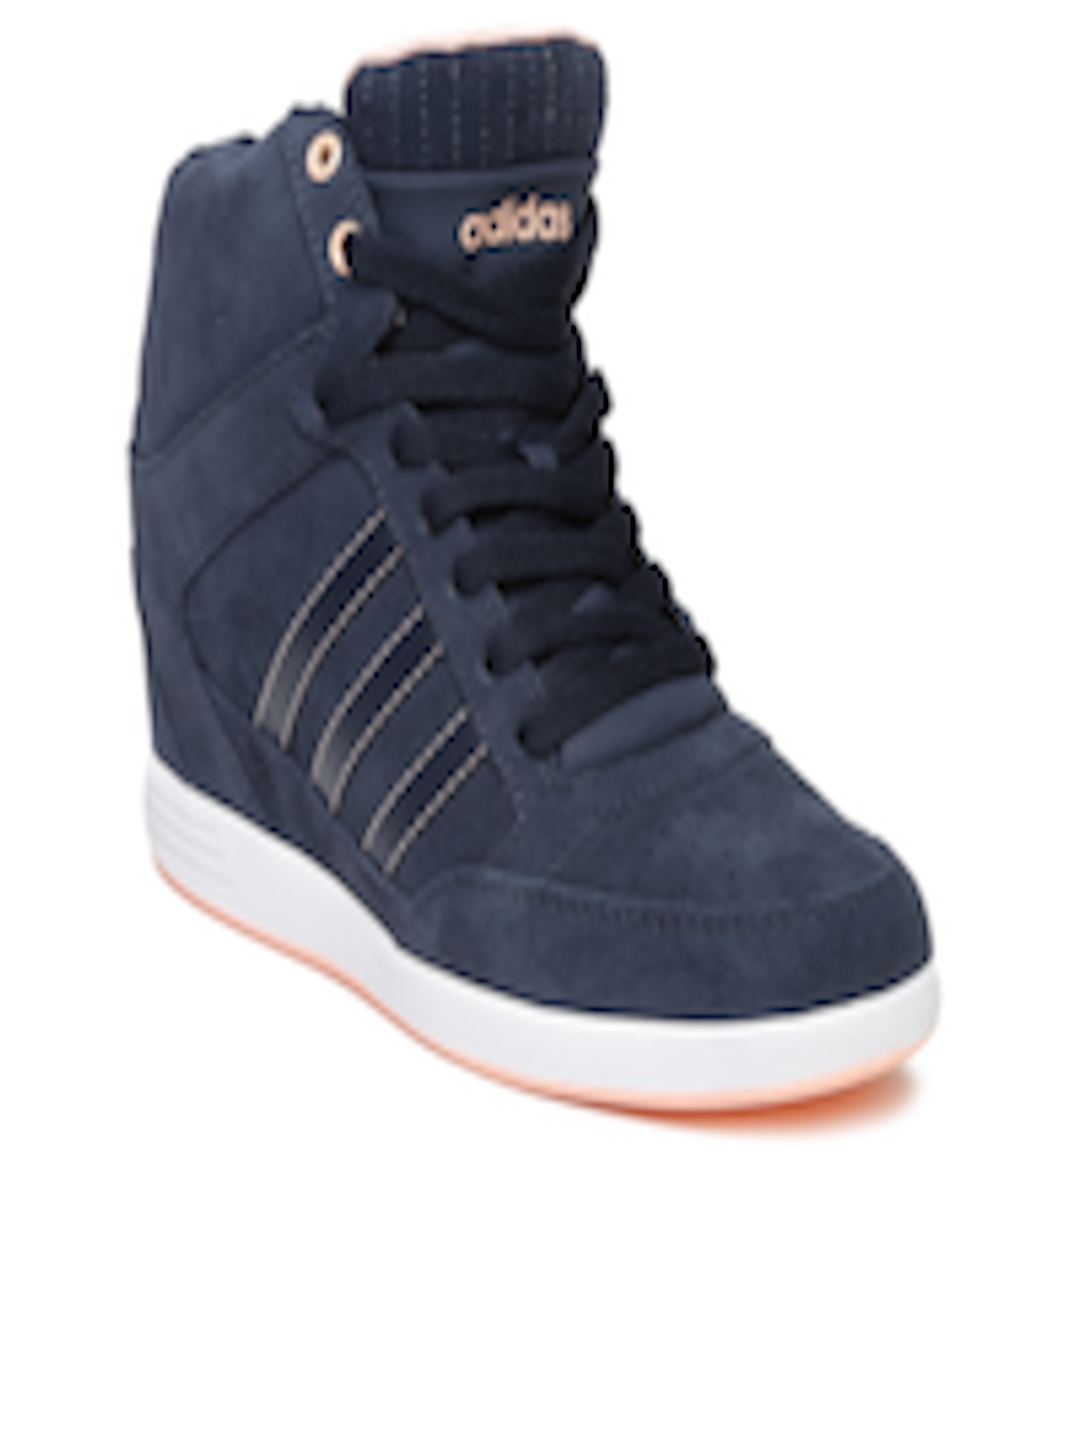 dd31b4fb6571 Buy ADIDAS NEO Women Navy Super Wedge Suede Sneakers - Casual Shoes for  Women 1193657